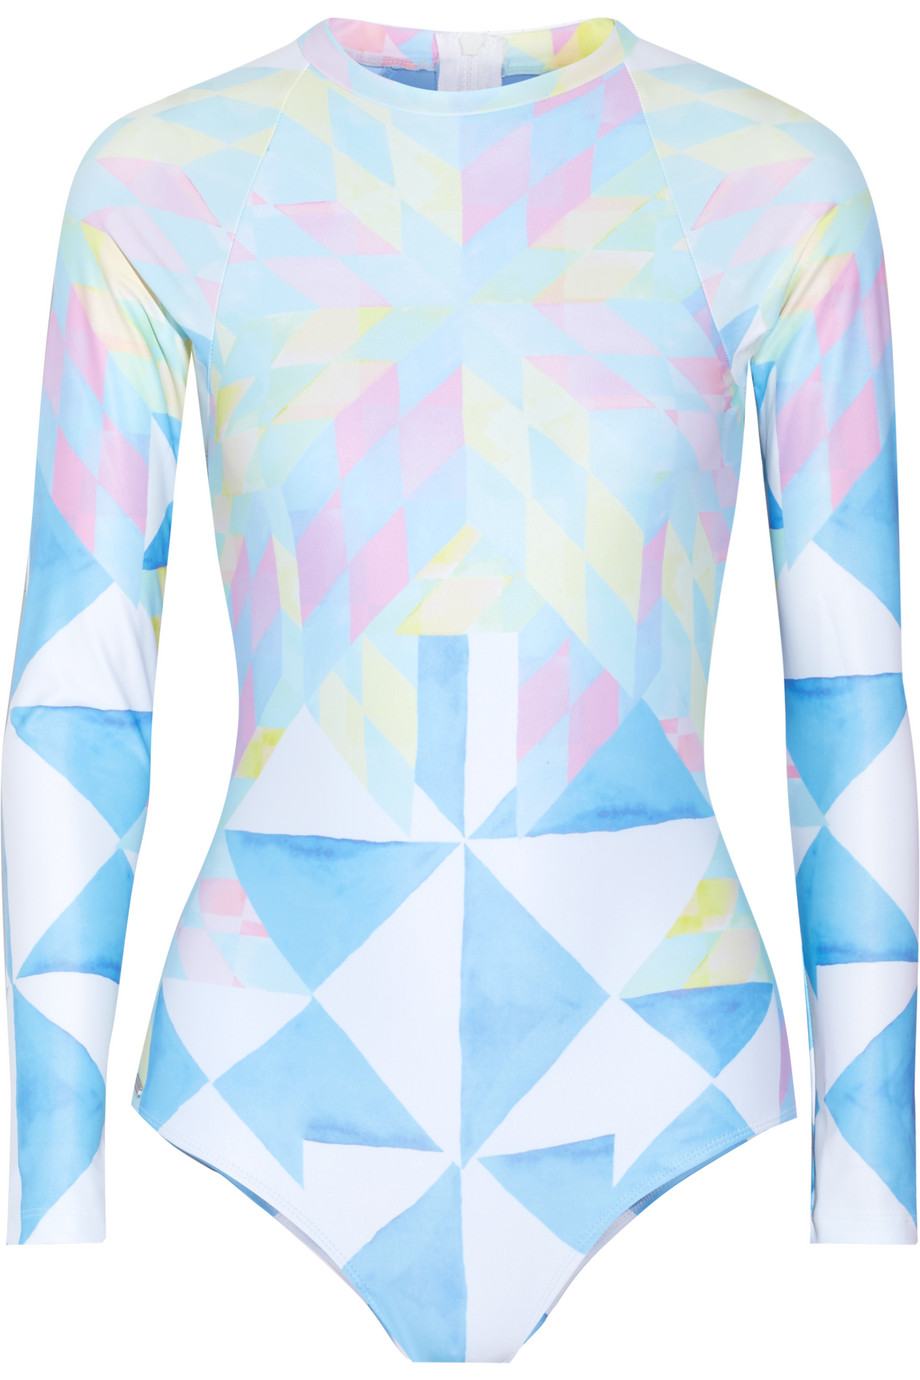 Mara Hoffman Printed Rash Guard, Sky Blue